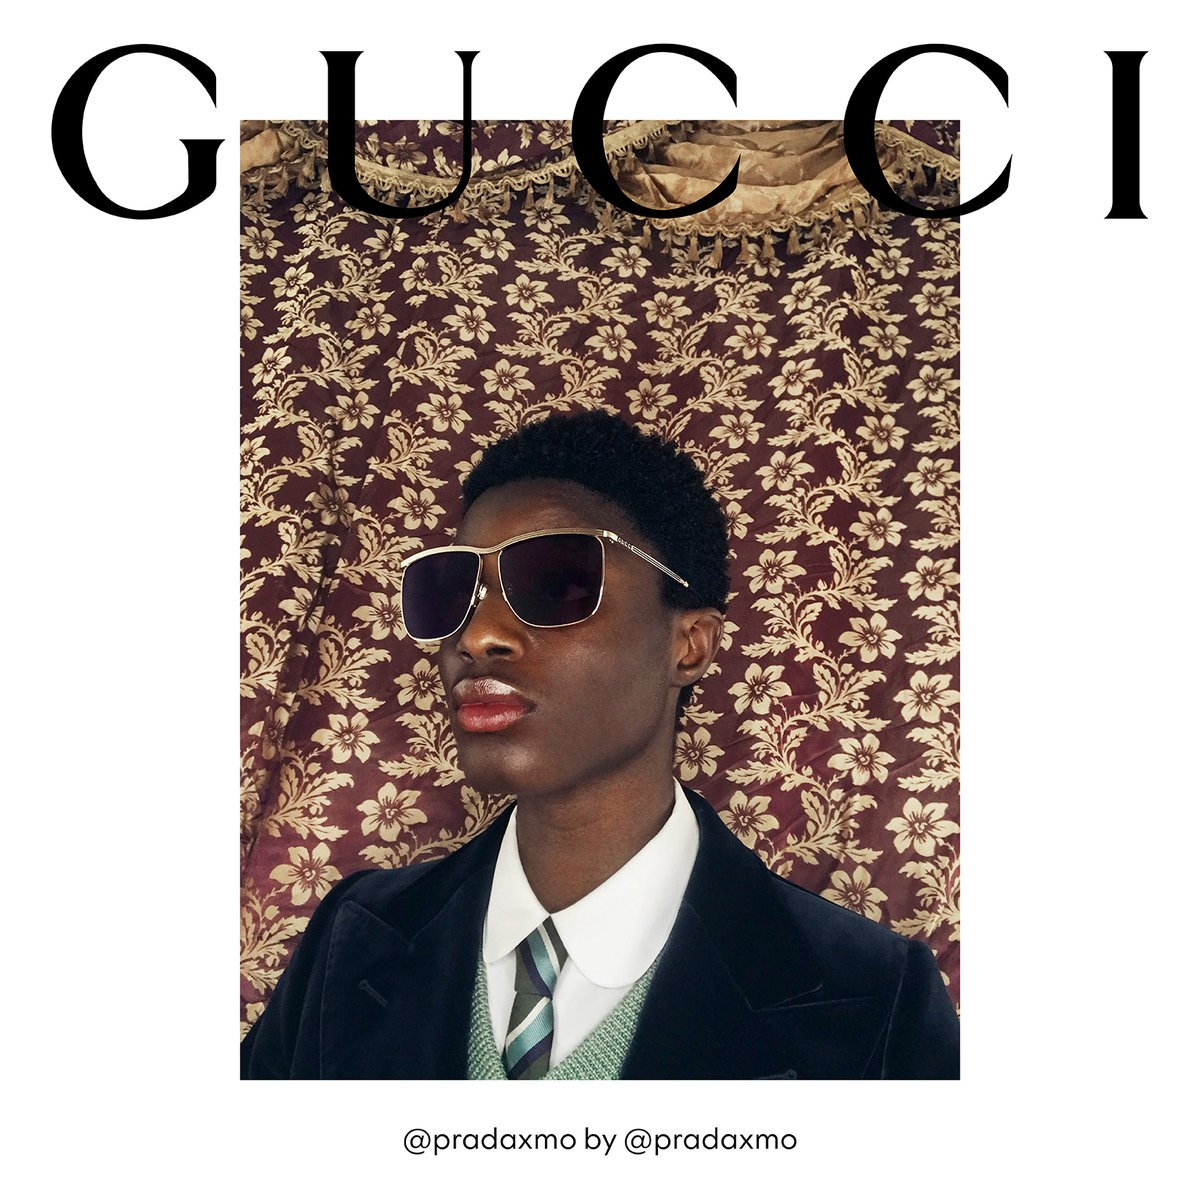 Square-shaped grey lenses are framed by thin gold-toned metal on a pair of new #GucciEyewear sunglasses seen in an image from #GucciTheRitual—the campaign with no script captured by models including #Molibo. Discover more https://t.co/5mICt8EKMG. #GucciFW20 #AlessandroMichele https://t.co/nGK4UEl0uL